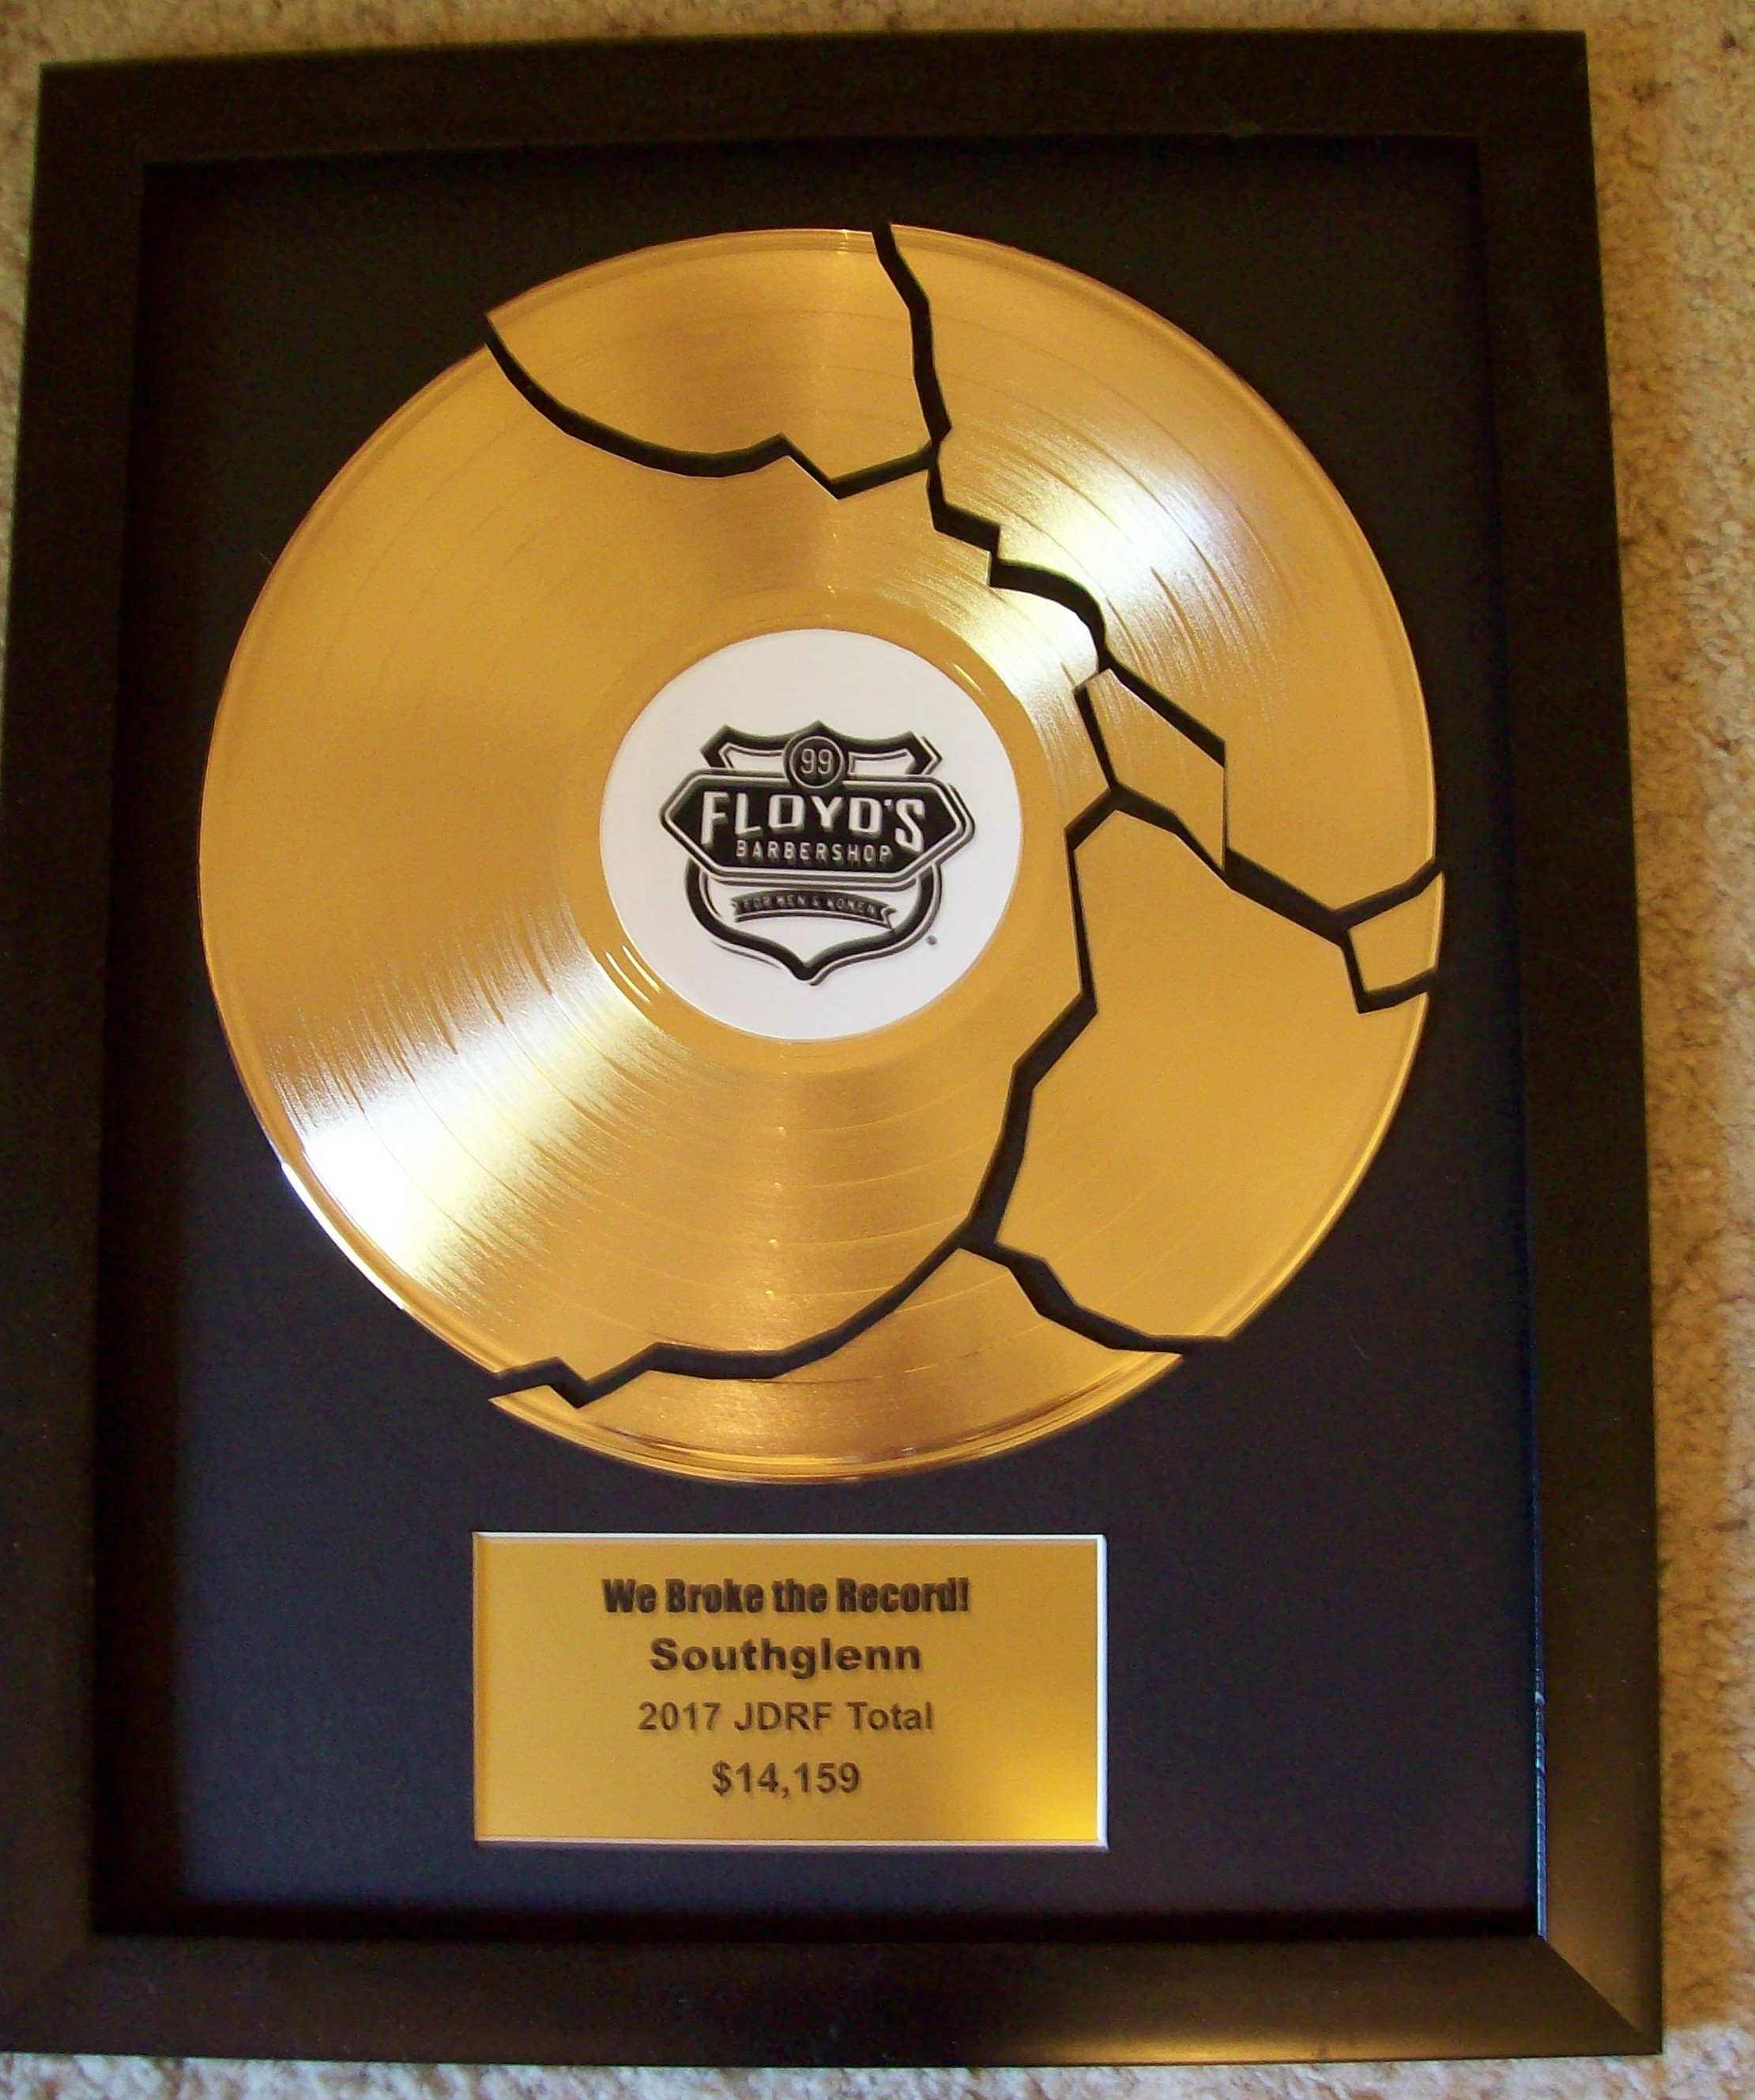 Image for Custom Gold Broken Record Award/Trophy